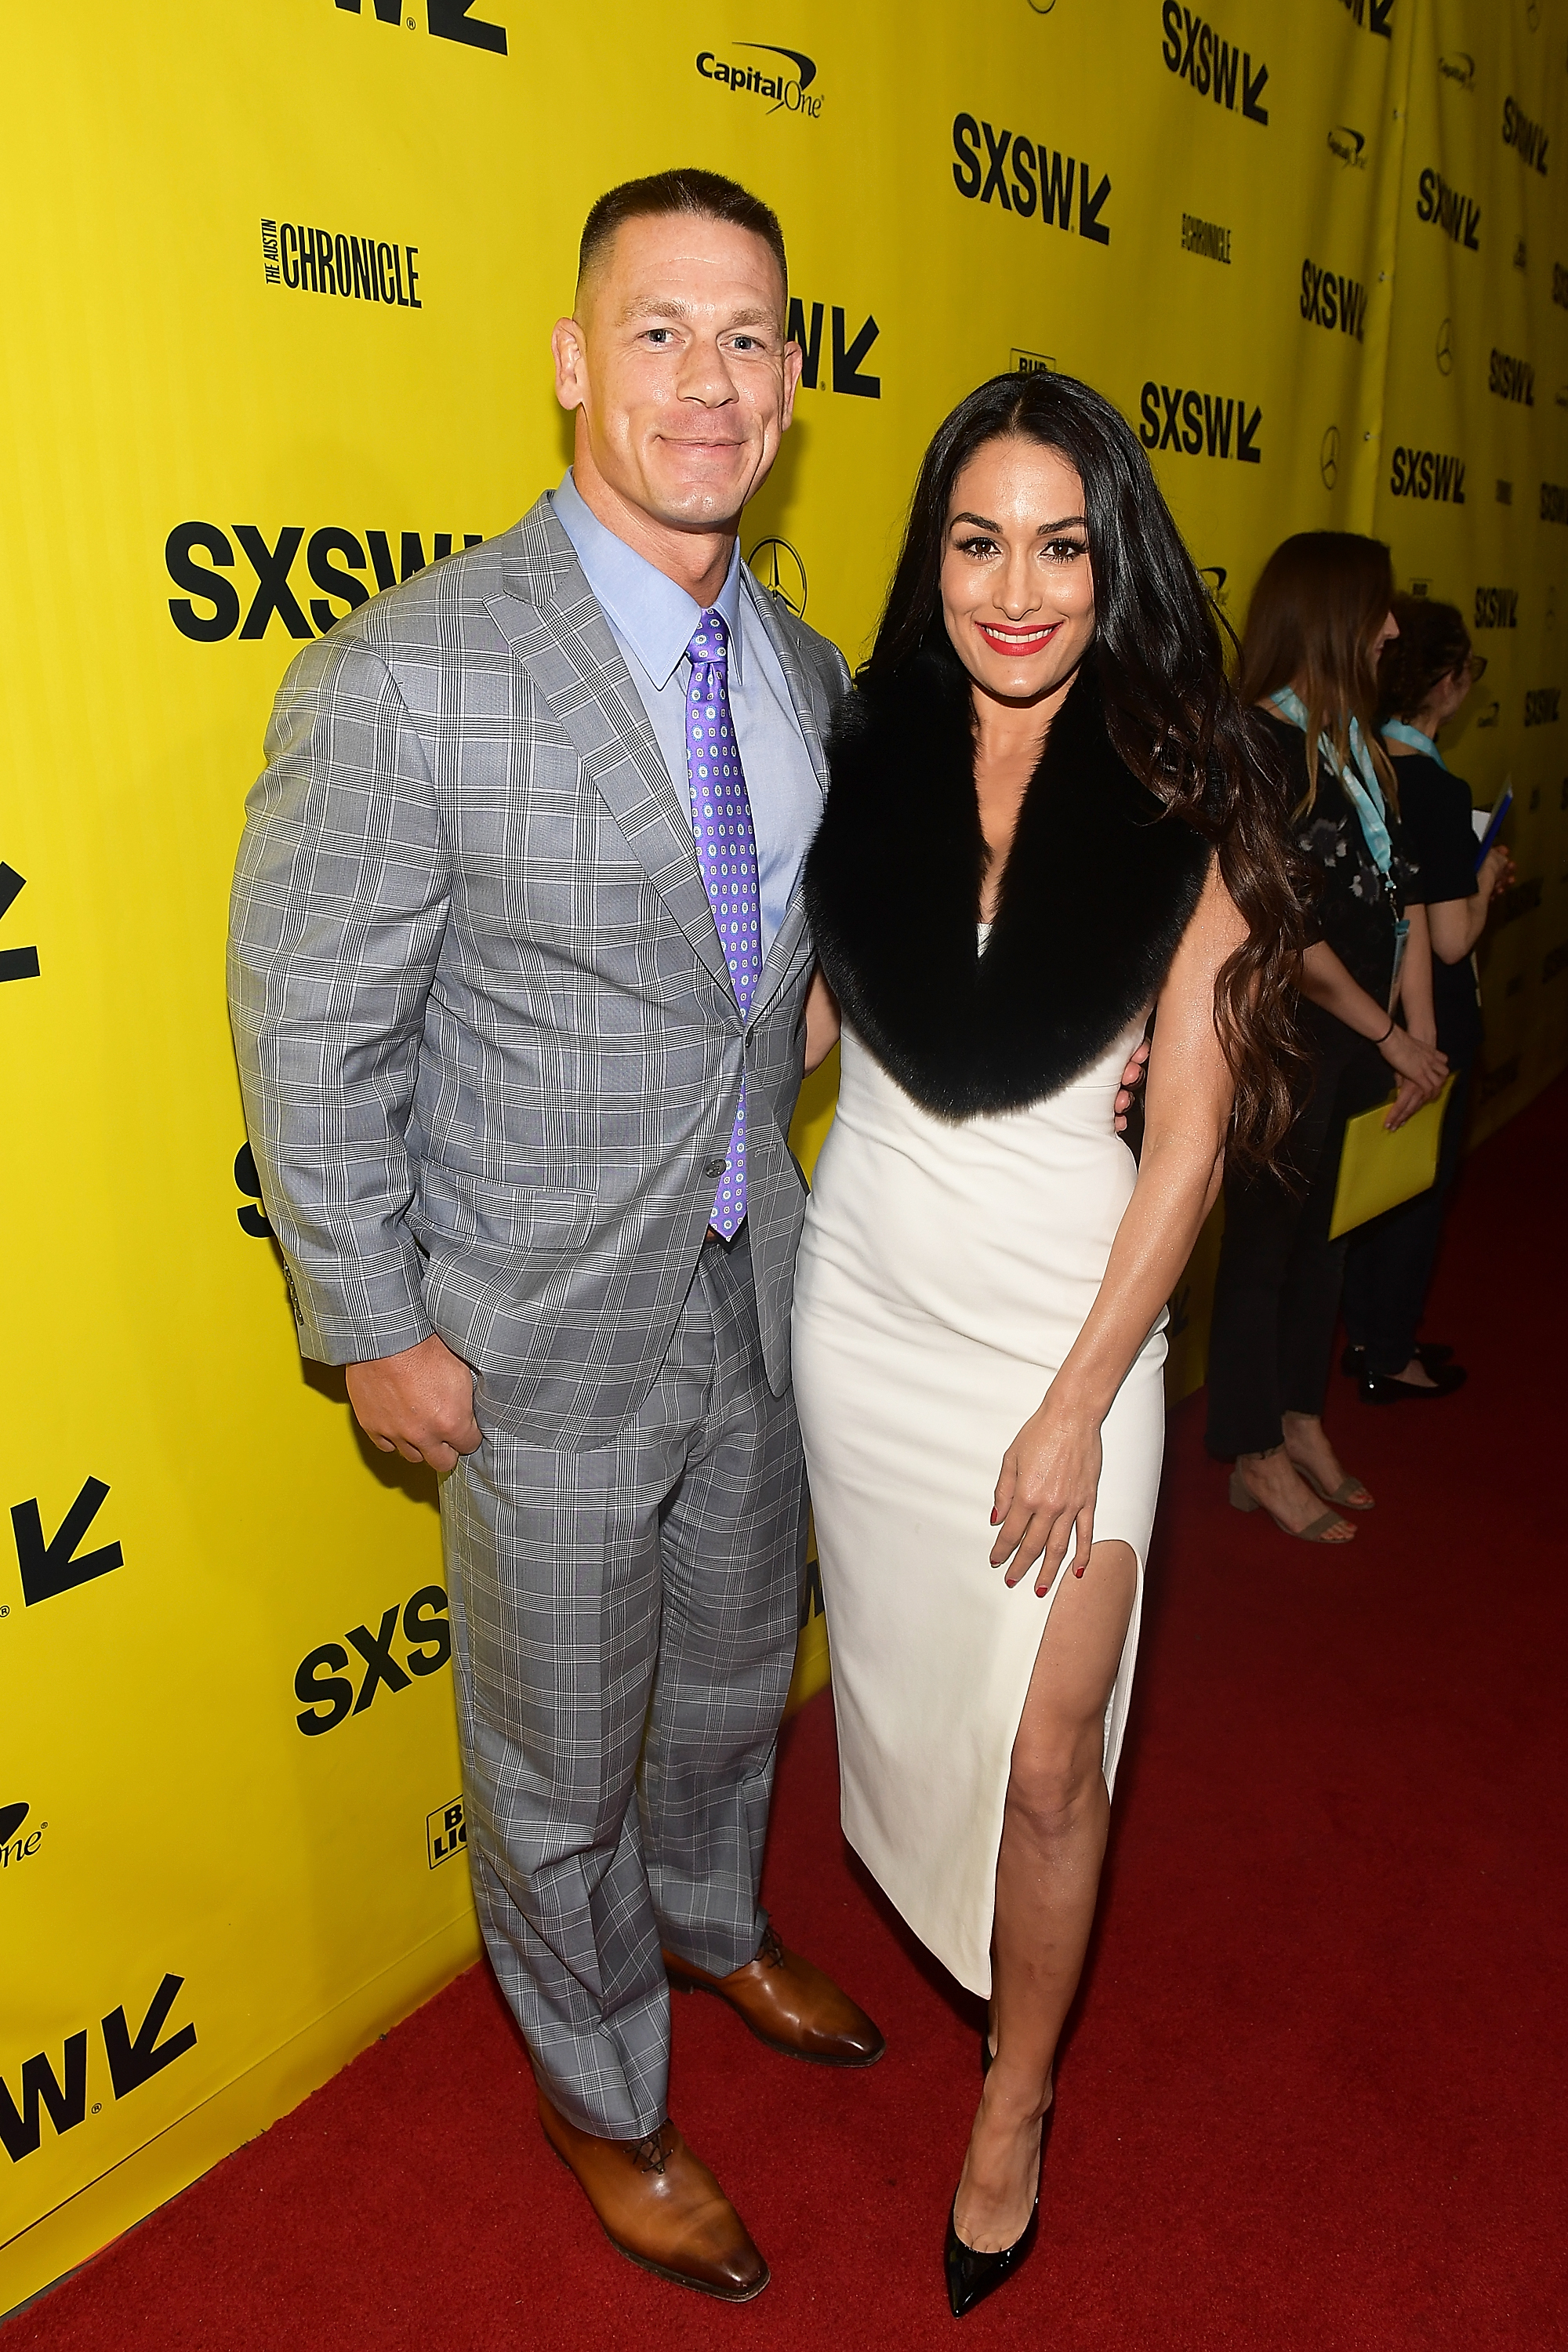 John Cena said he still loves and wants to marry Nikki Bella and ...